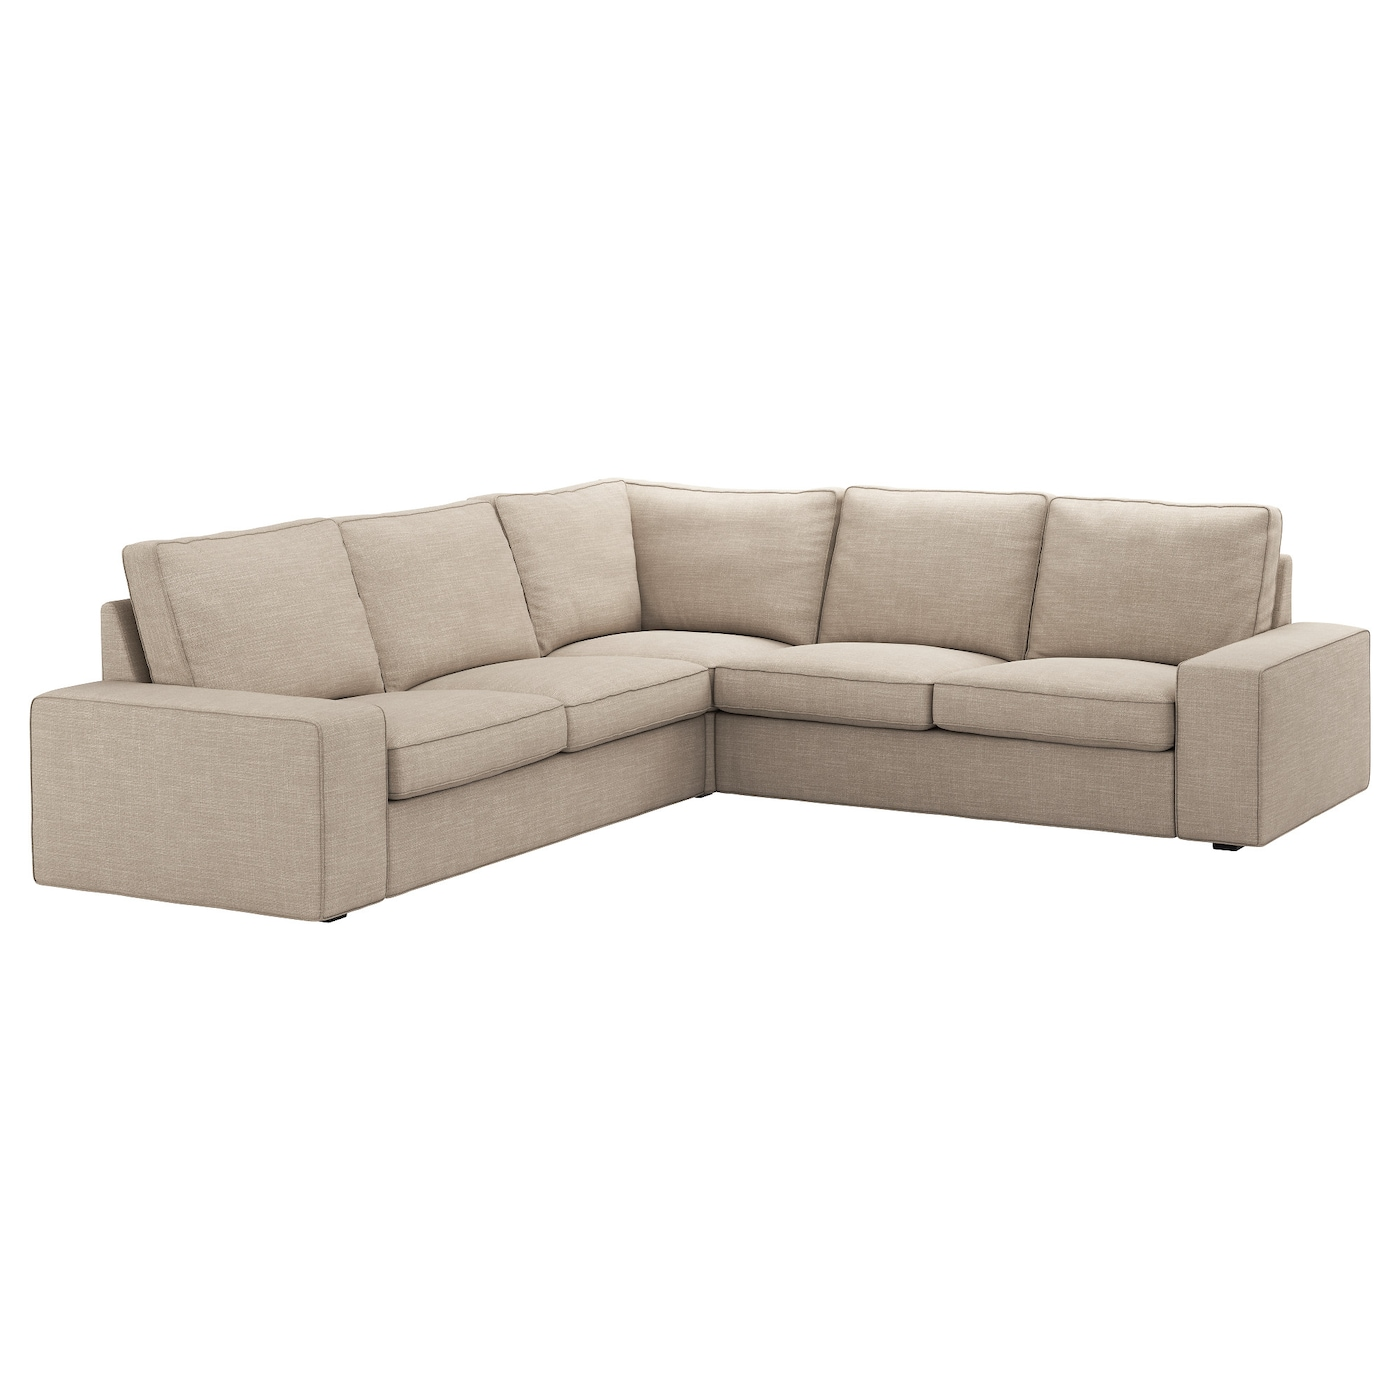 kivik corner sofa 4 seat hillared beige ikea. Black Bedroom Furniture Sets. Home Design Ideas